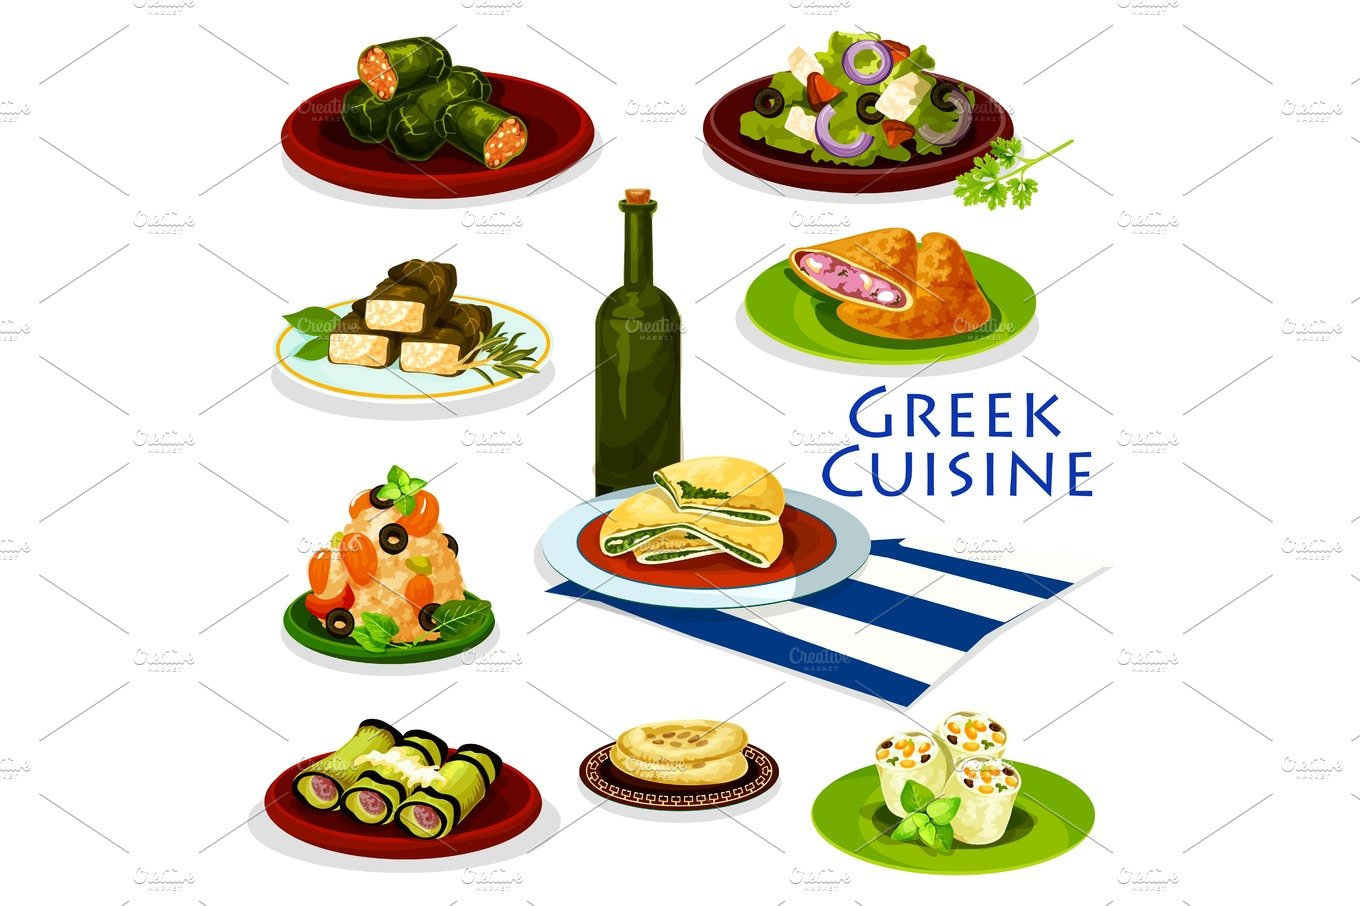 Greek cuisine healthy food cartoon icon design for Cuisine healthy